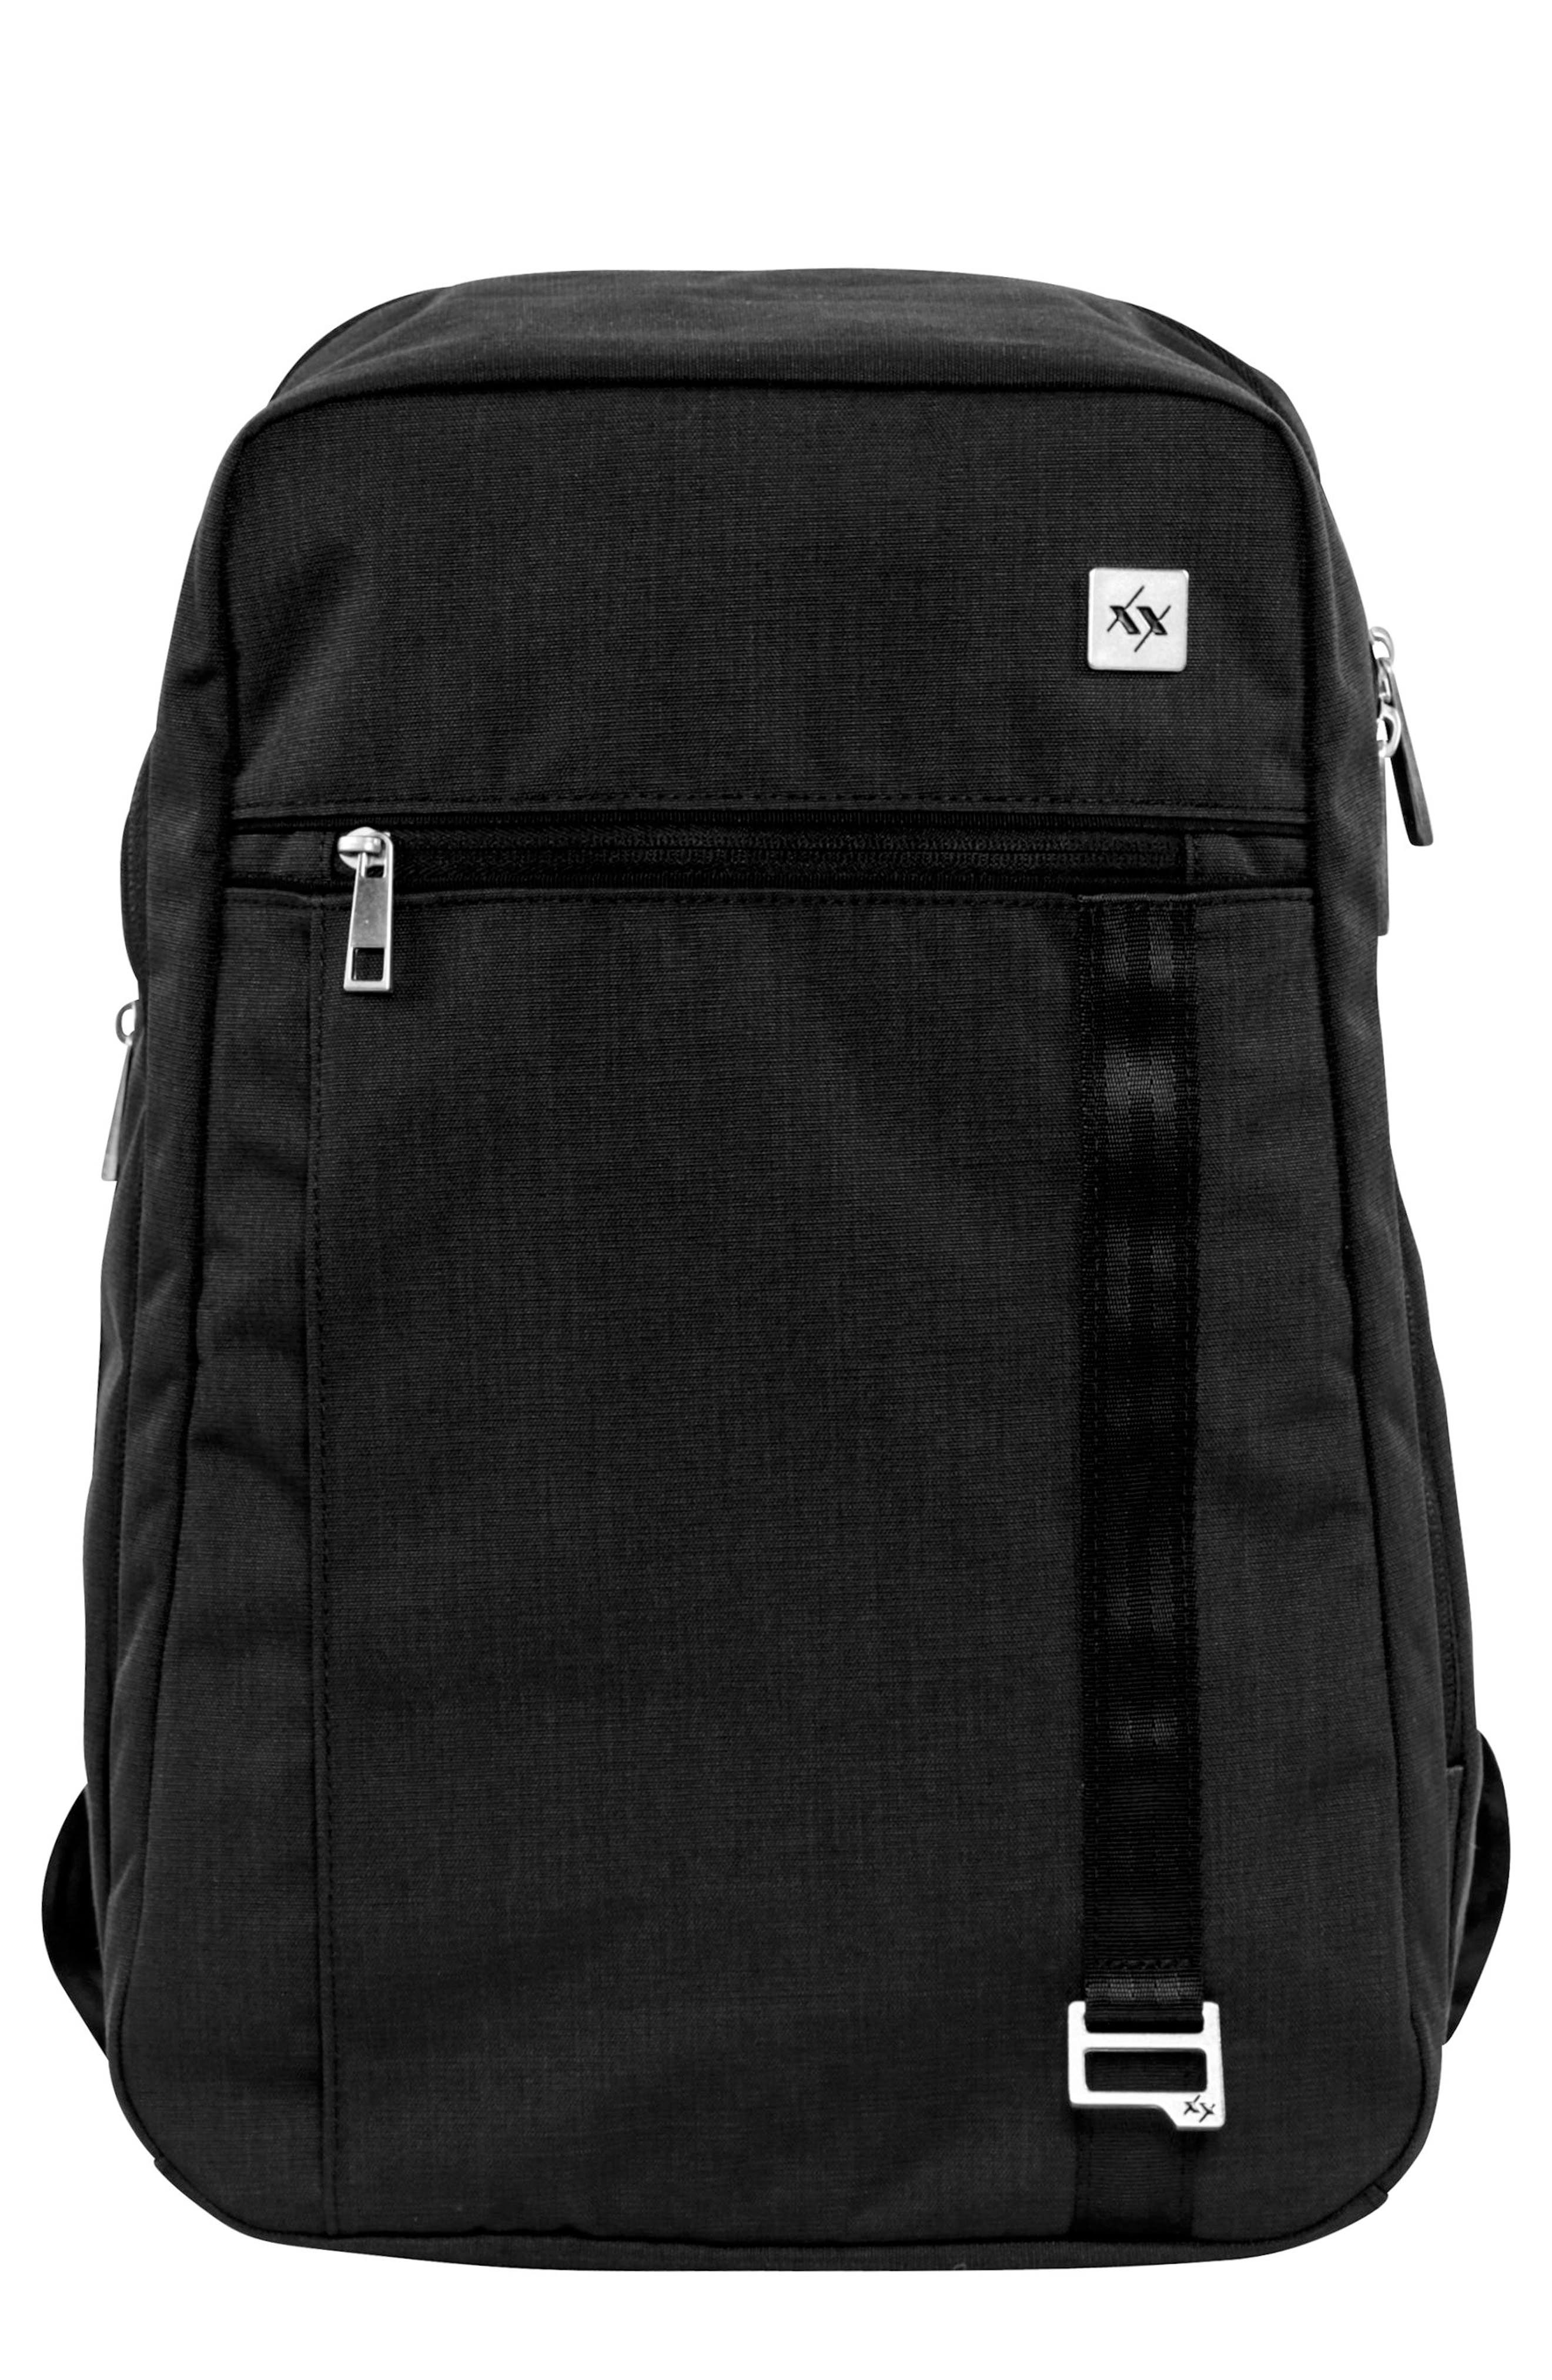 Ju-Ju-Be XY Base Diaper Backpack